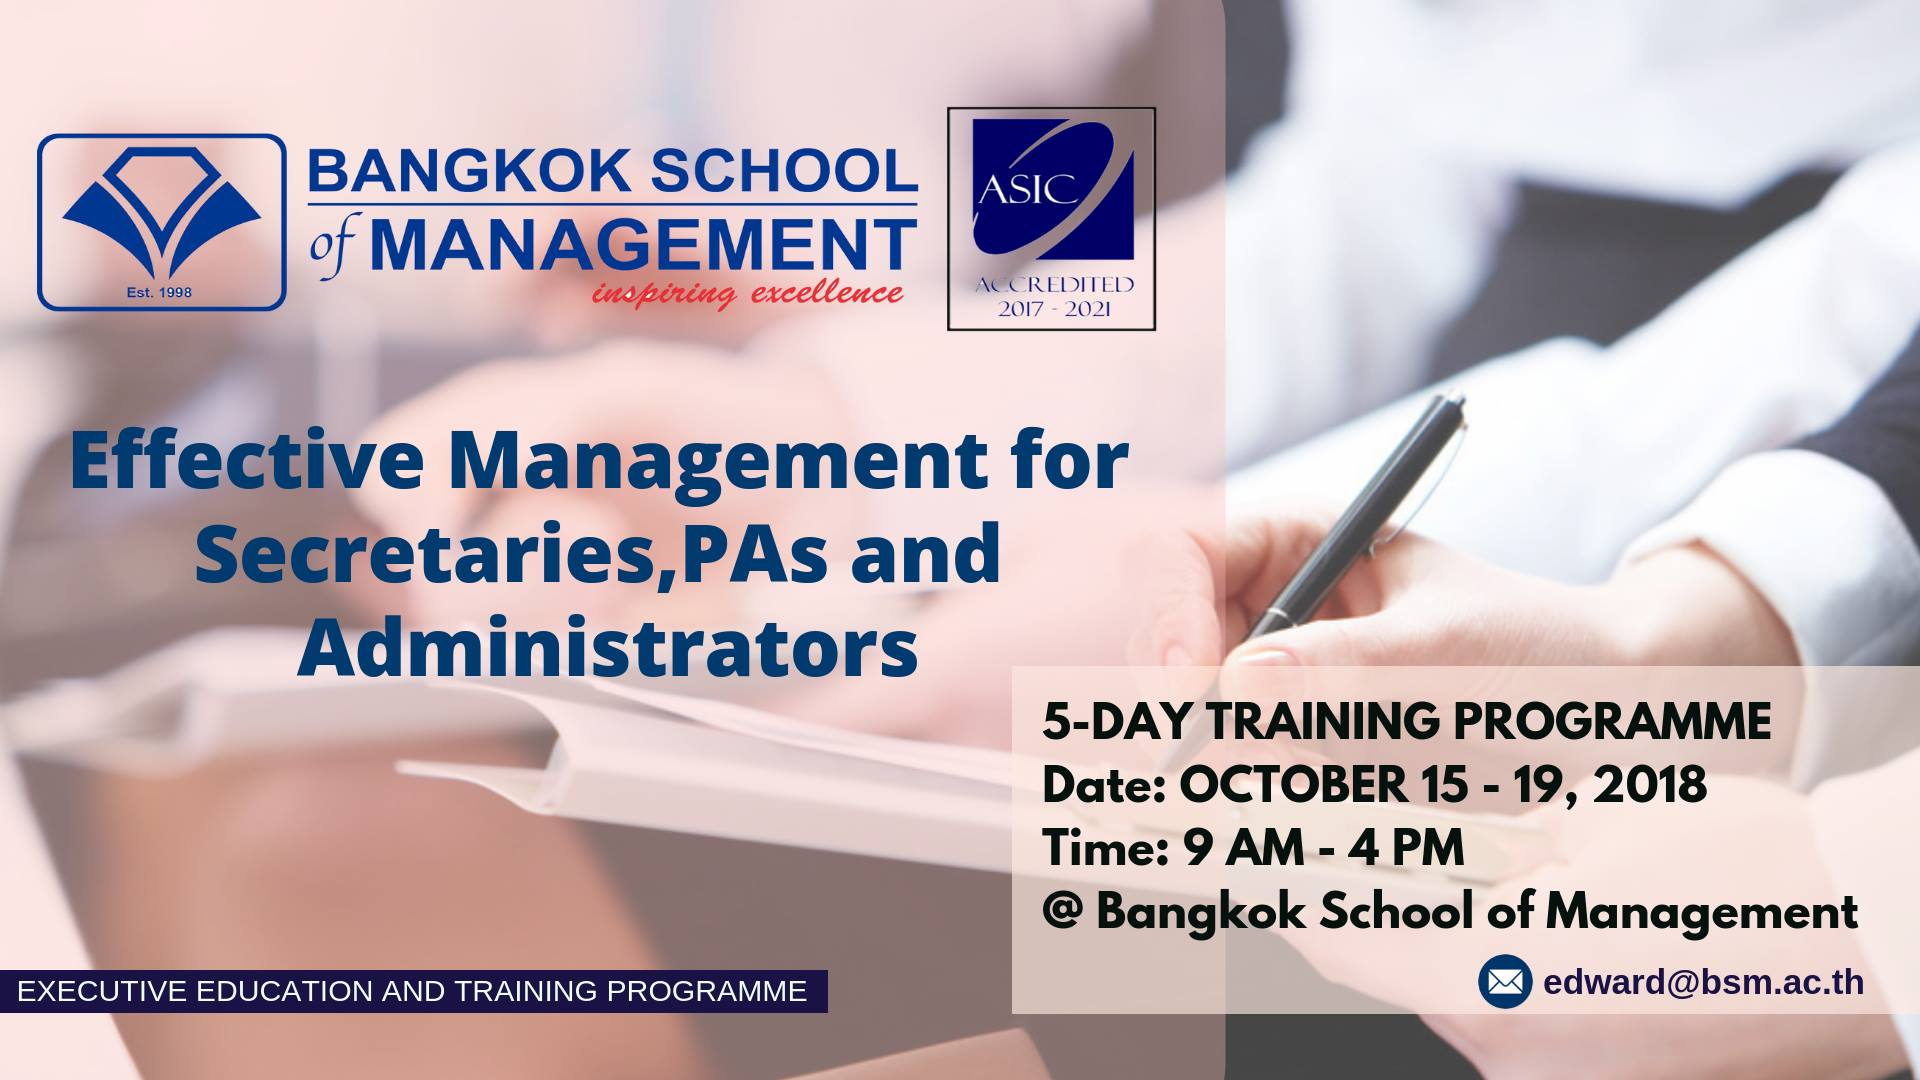 Date: October 15 – 19, 2018Effective Management for Secretaries, PAs and Administrators